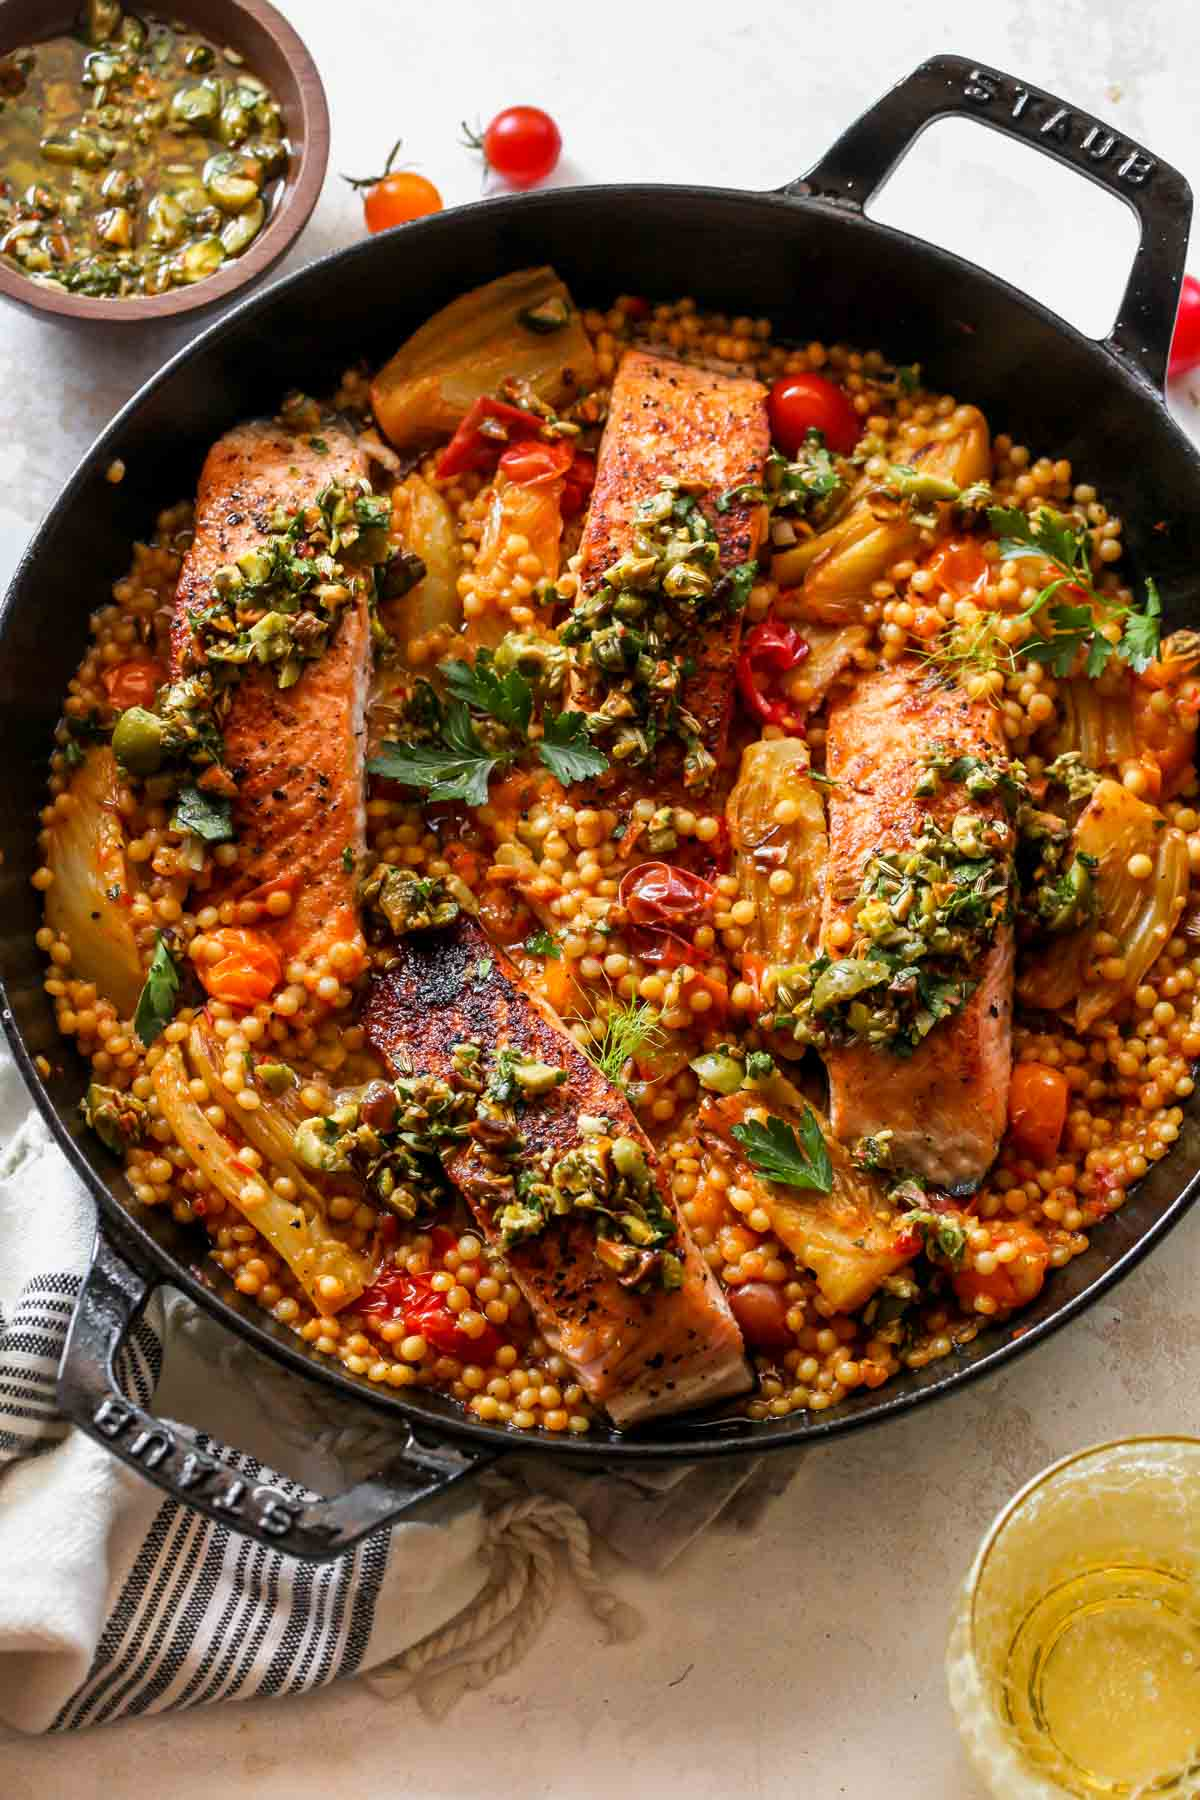 Salmon being added to a skillet of couscous, tomatoes, and fennel